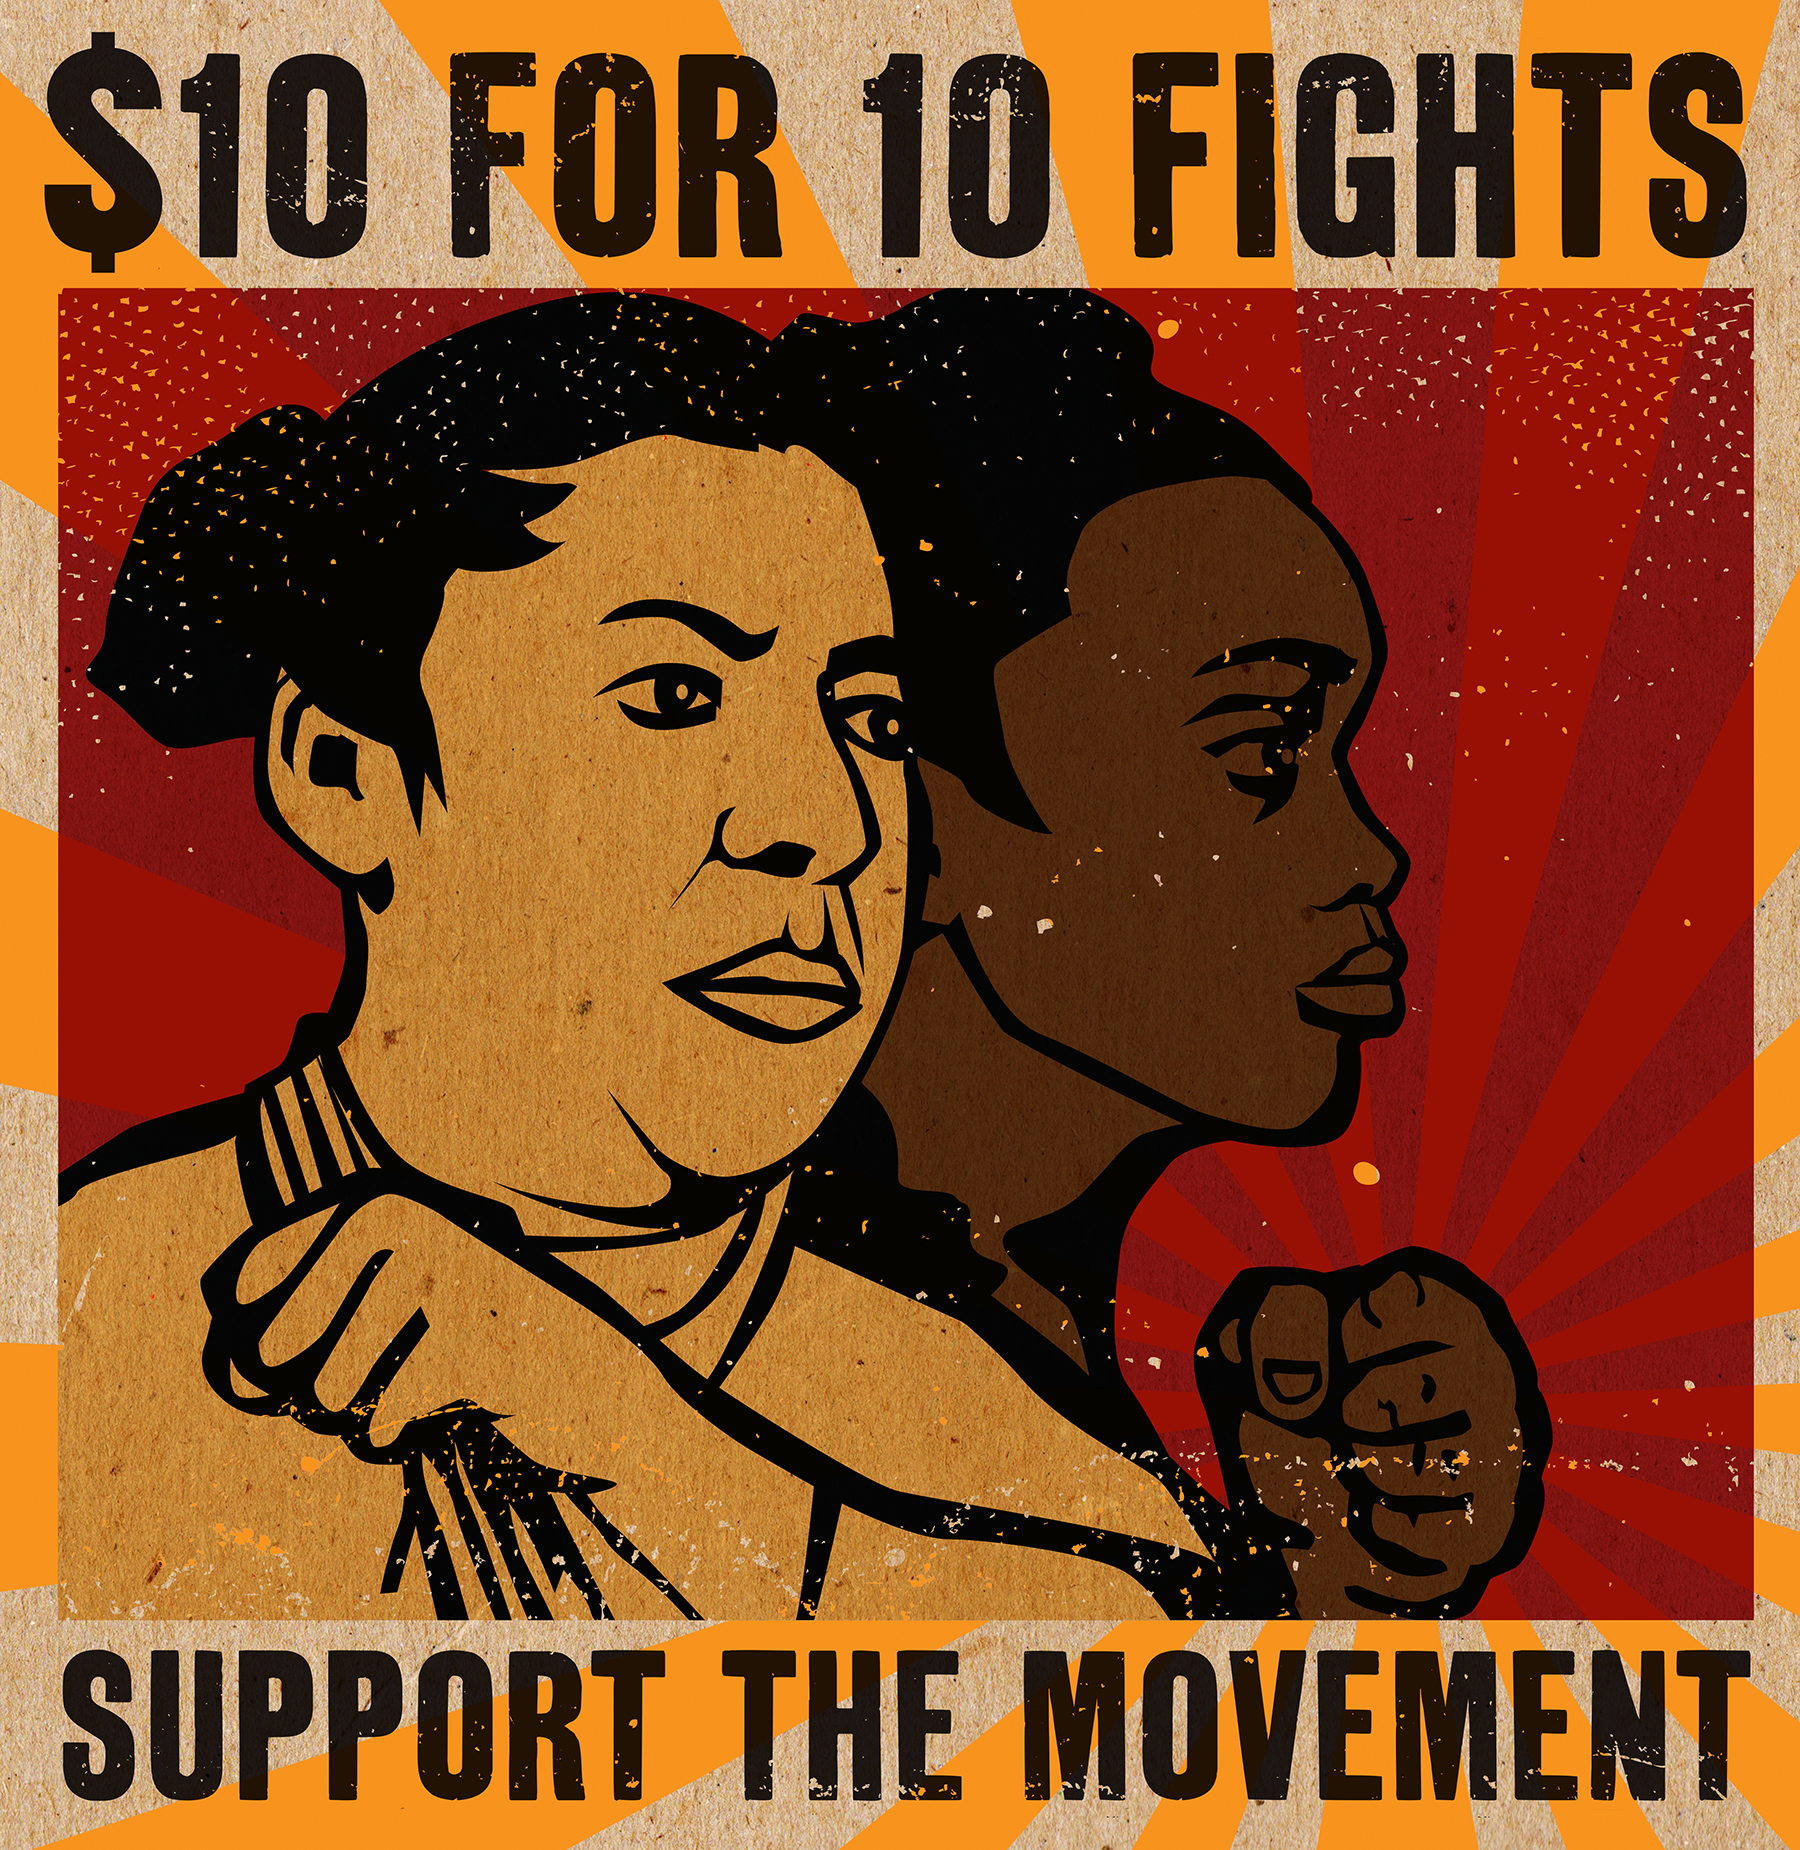 $10 for 10 Fights! CJJC's new grassroots fundraising campaign